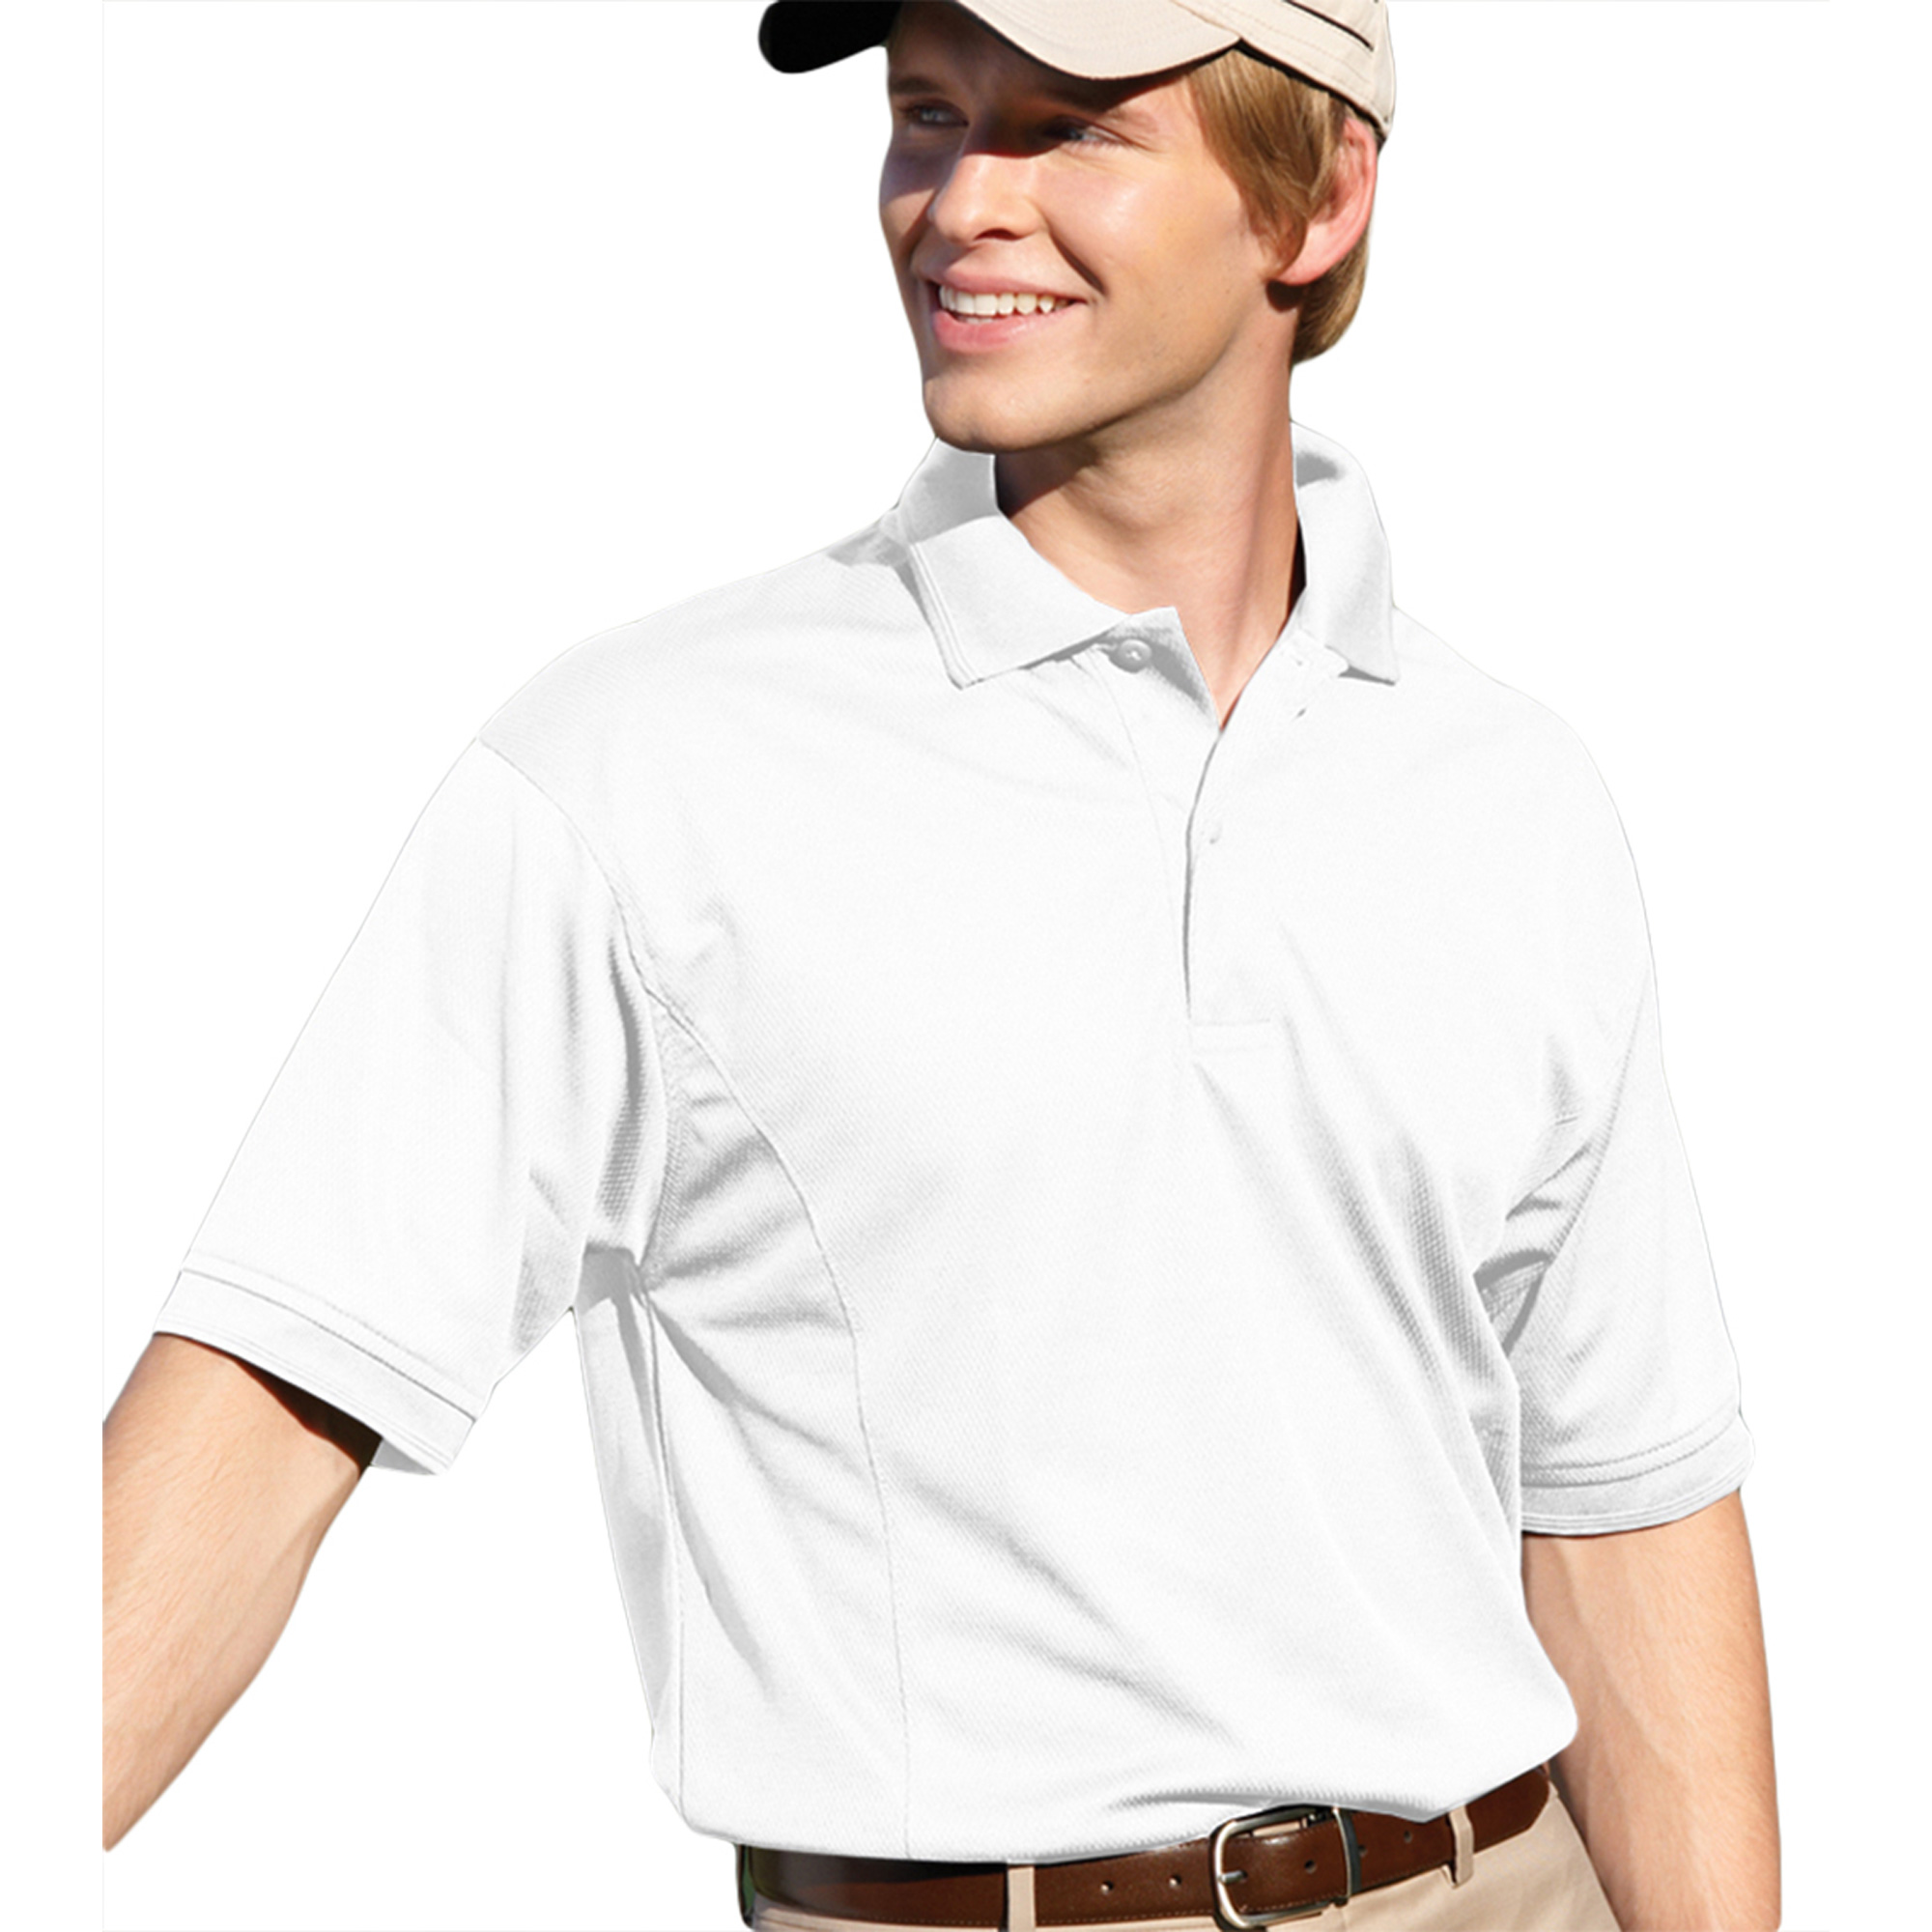 00820599180996 MENS PERFORMANCE GOLF SHIRT 2800 BUTTER 2XL